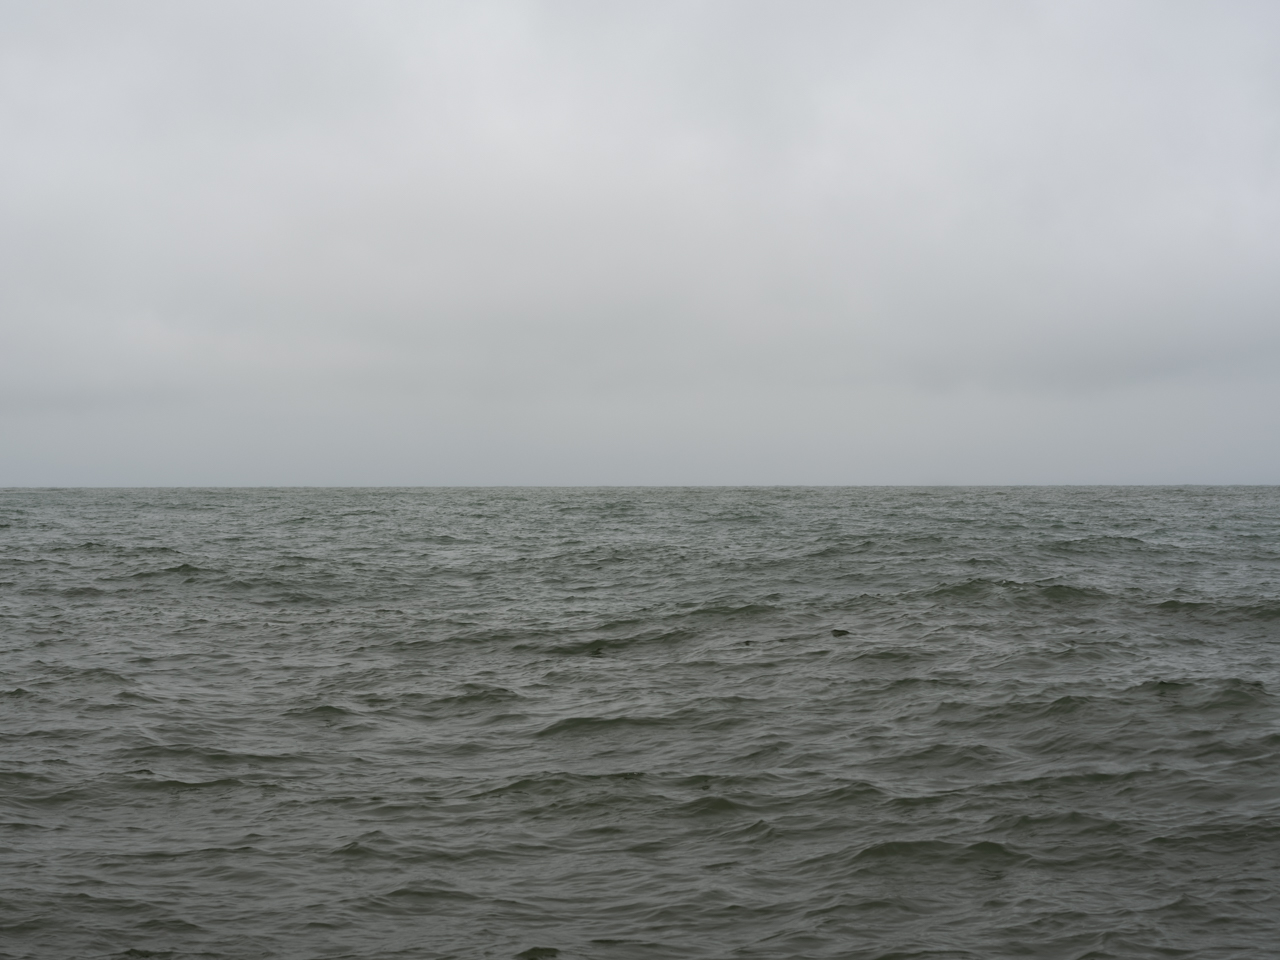 Gray-green day on Lake Michigan with light waves